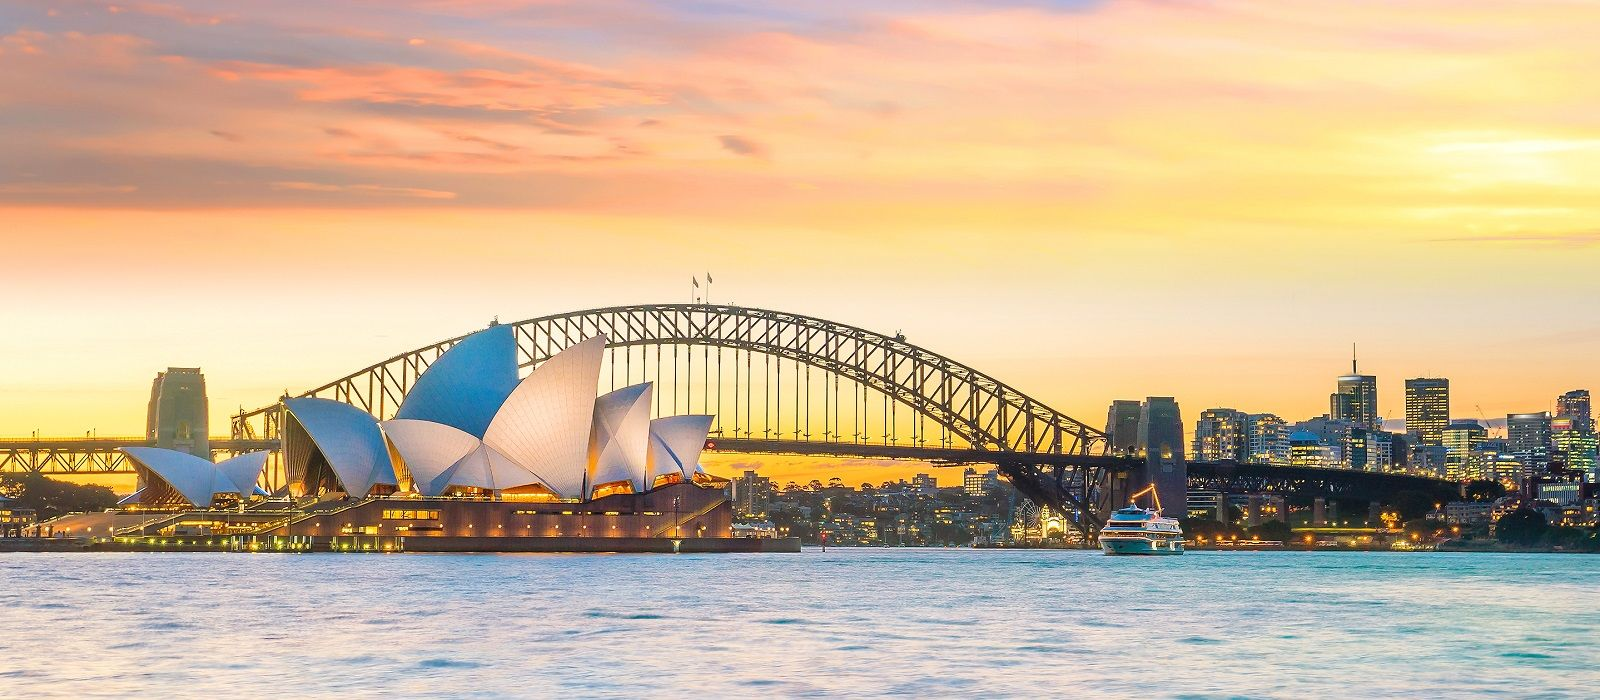 Luxury Down Under: Culture, Landscapes & Paradise Islands Tour Trip 5